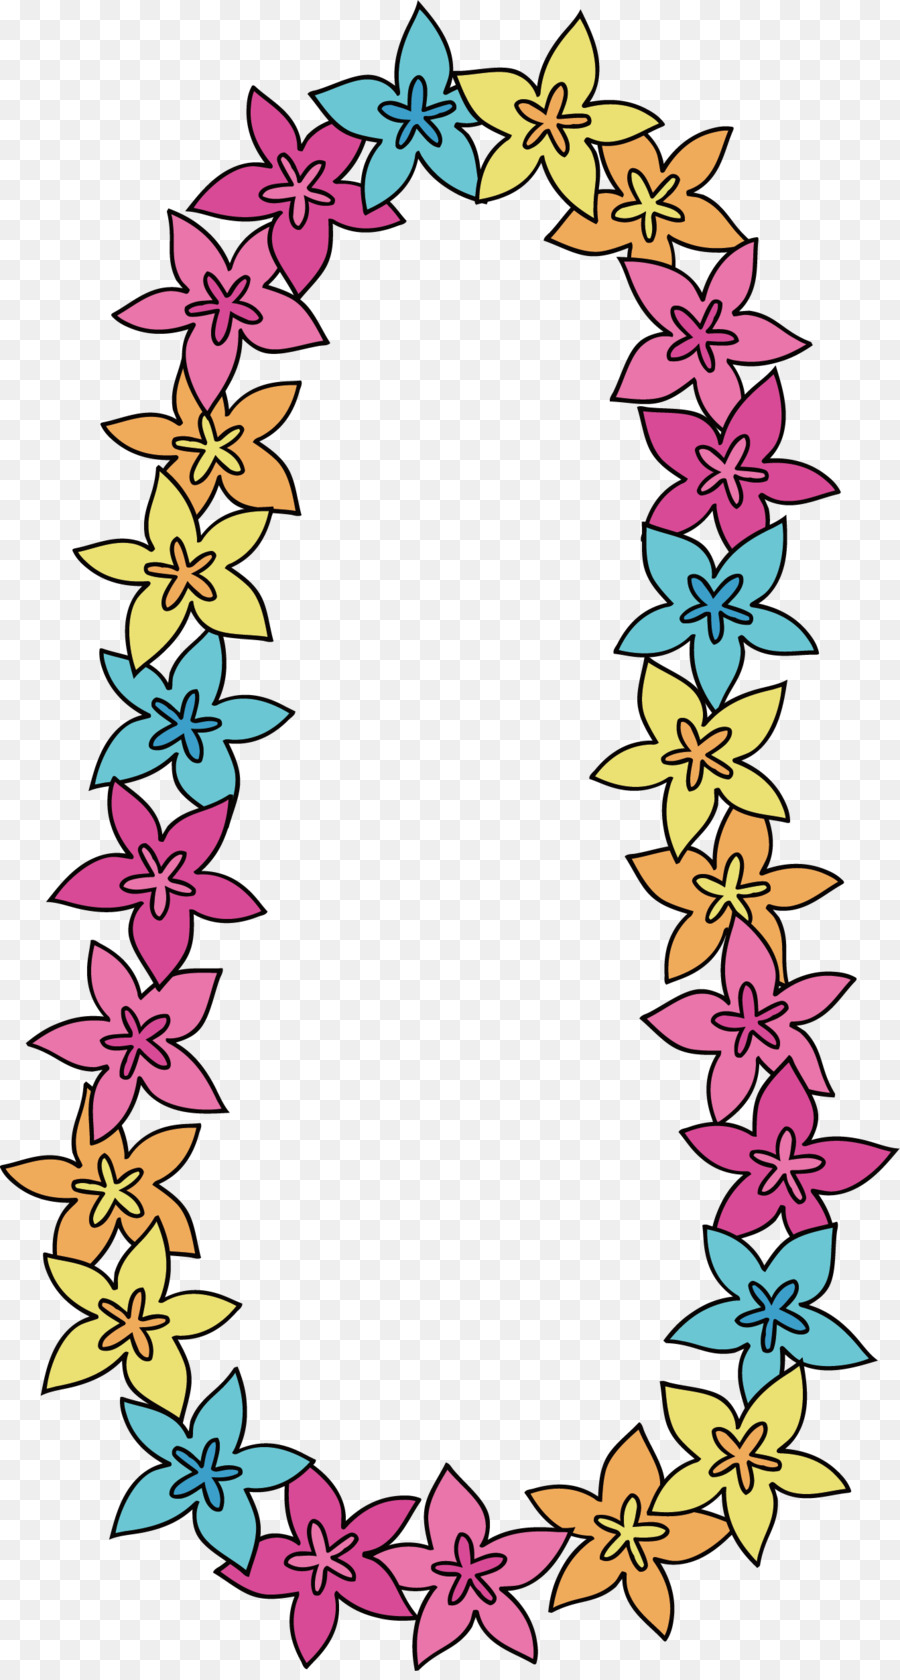 medium resolution of wreath painting flower pink png